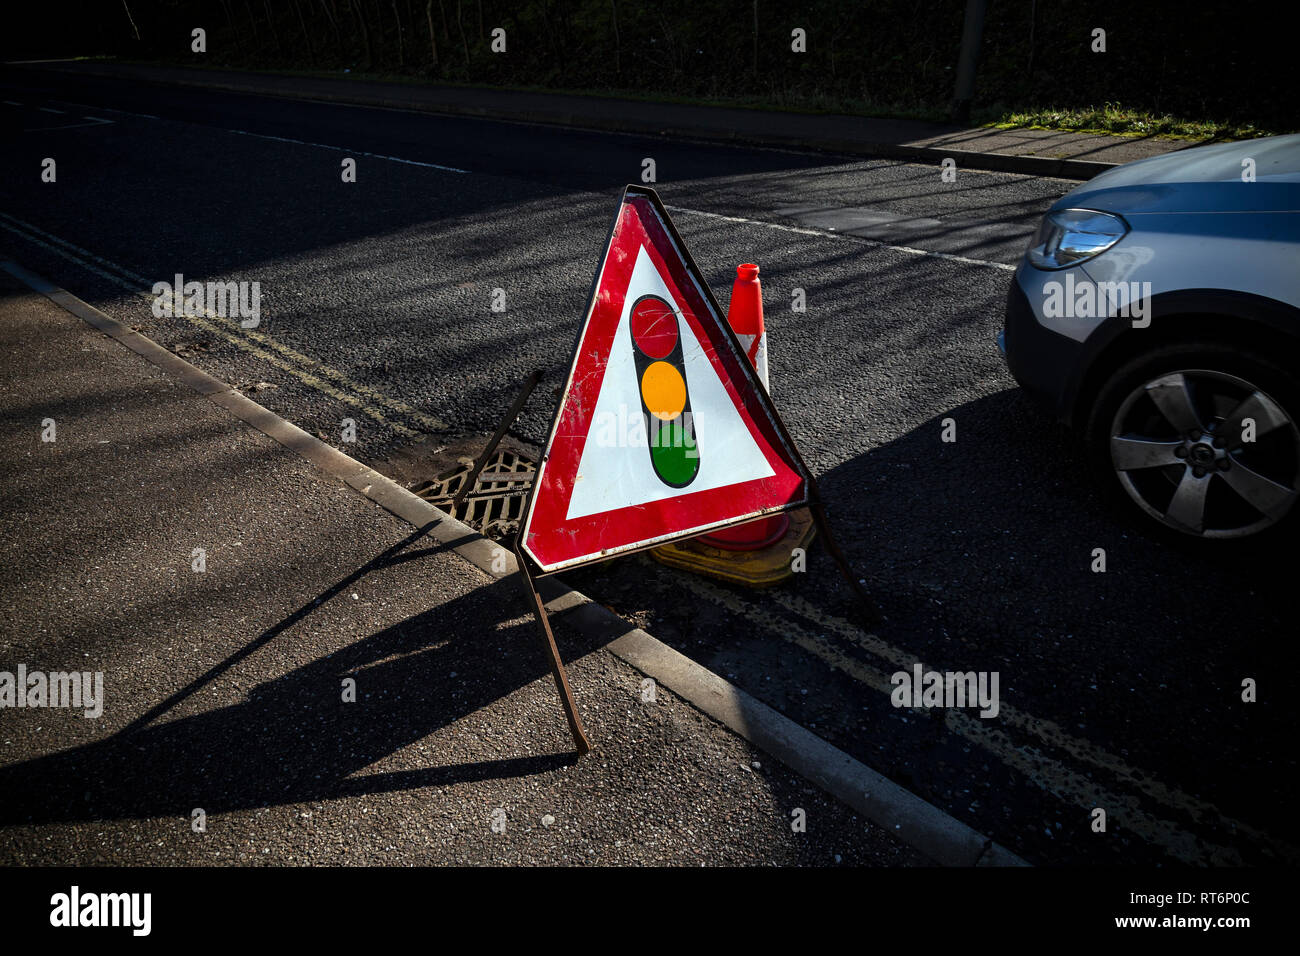 Temporary, Stoplight, Driving, Red, Road, UK, Road Construction, Road Sign, Warning Sign, Advice, Alertness, Assertiveness, Awe, Brown, Communication, - Stock Image